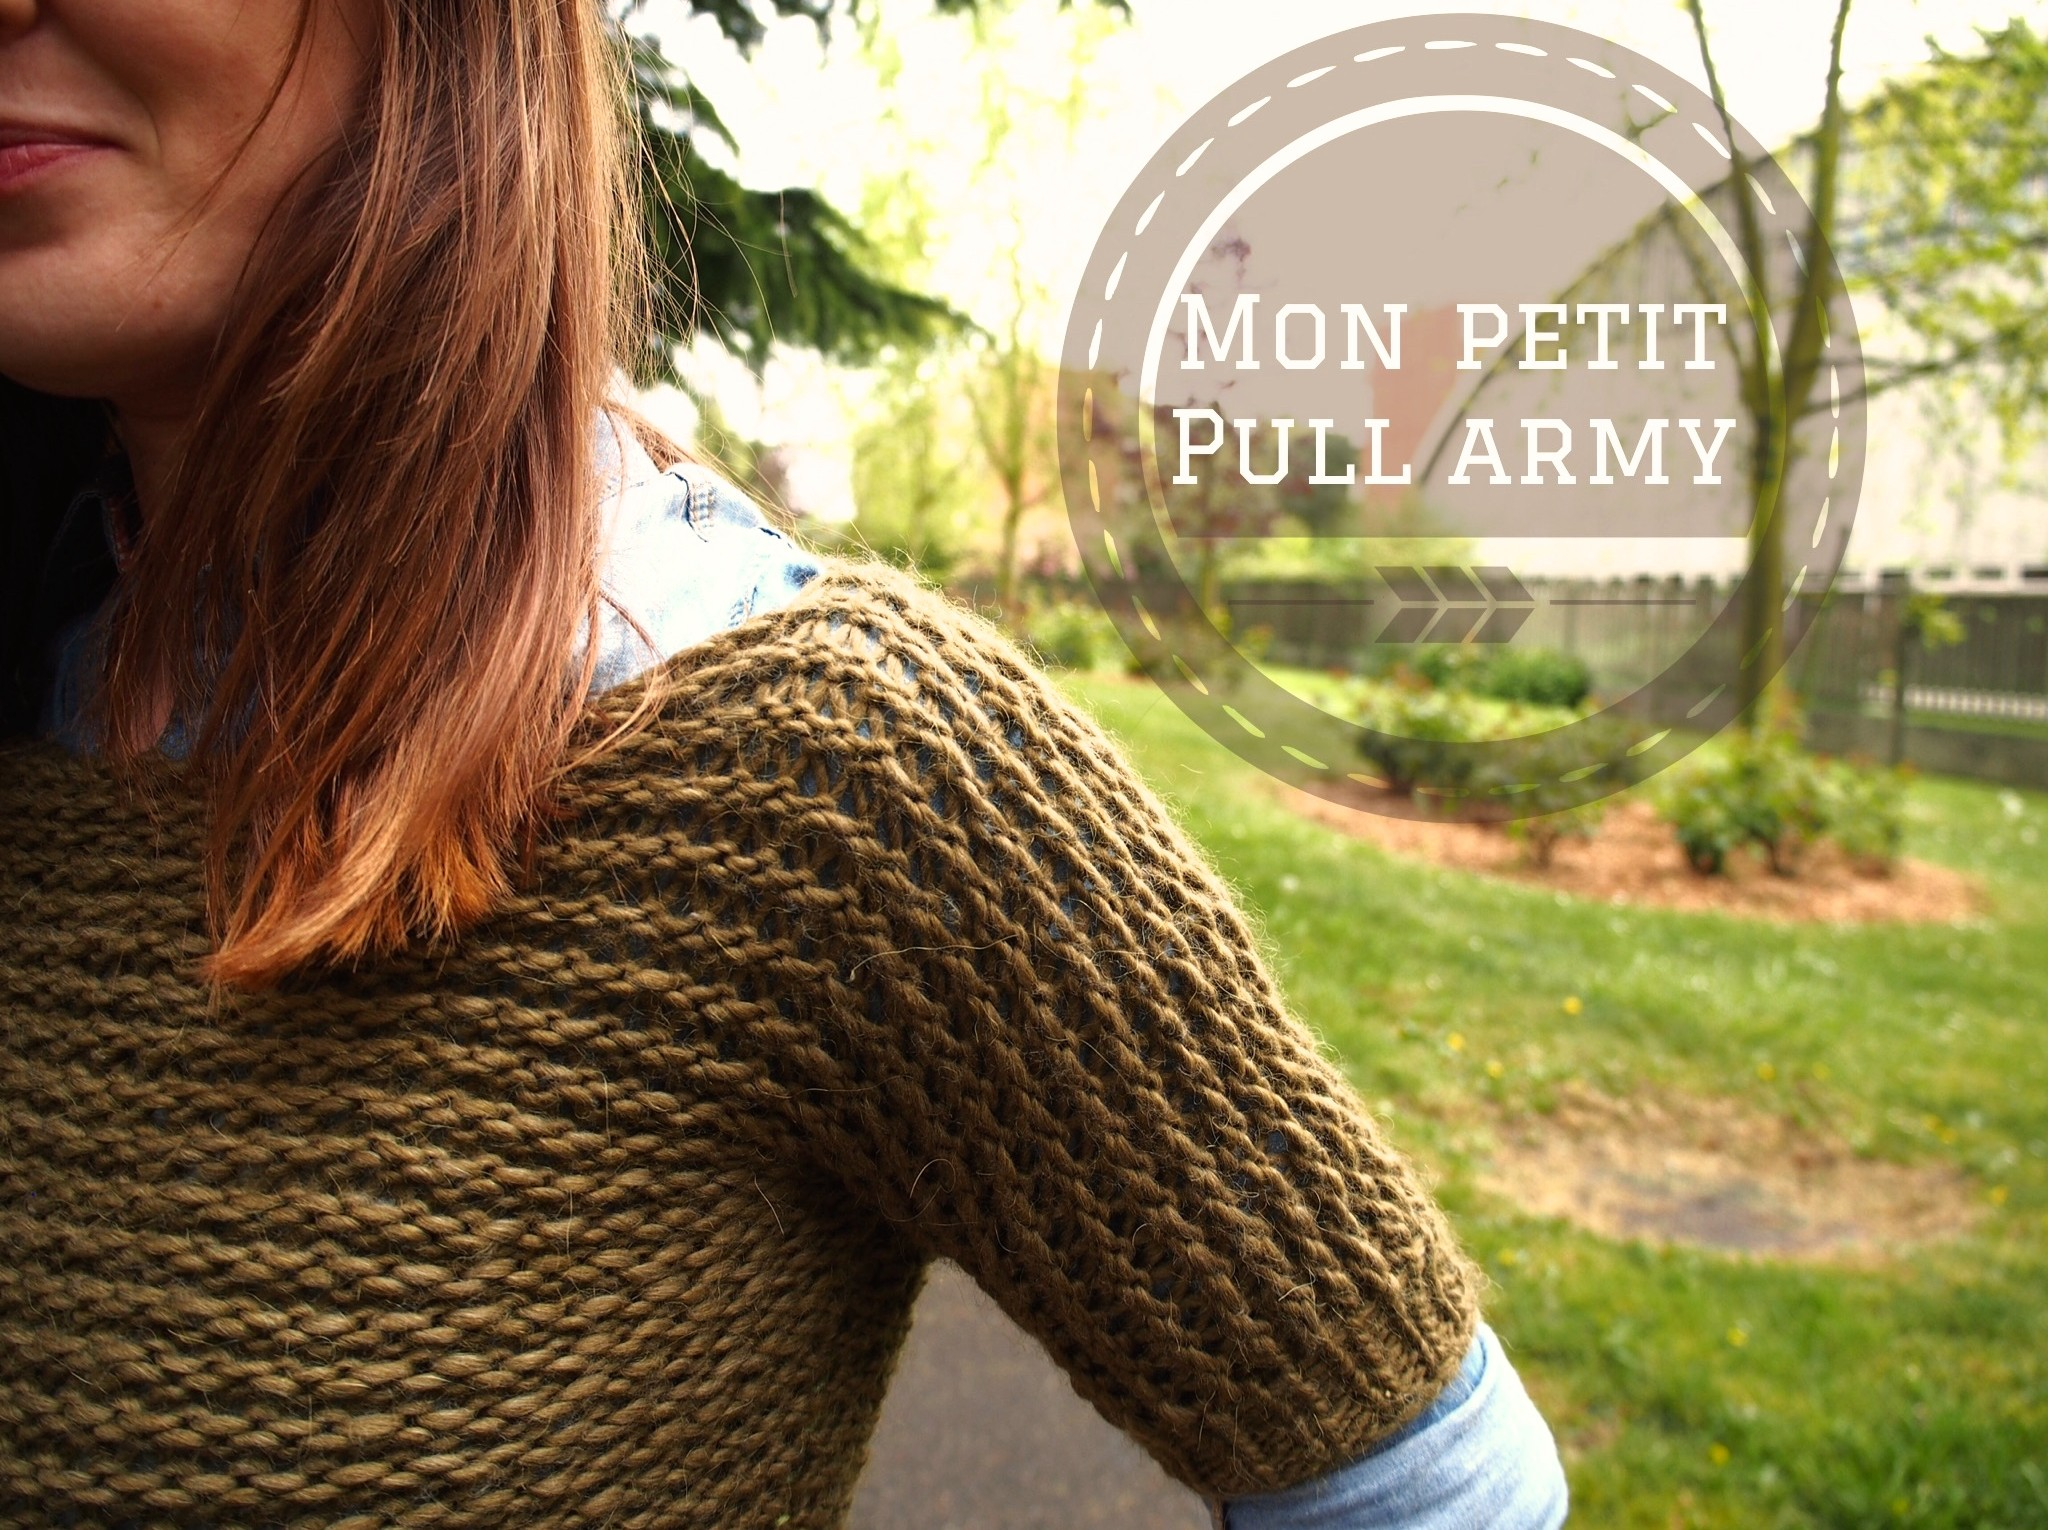 Mon petit pull army